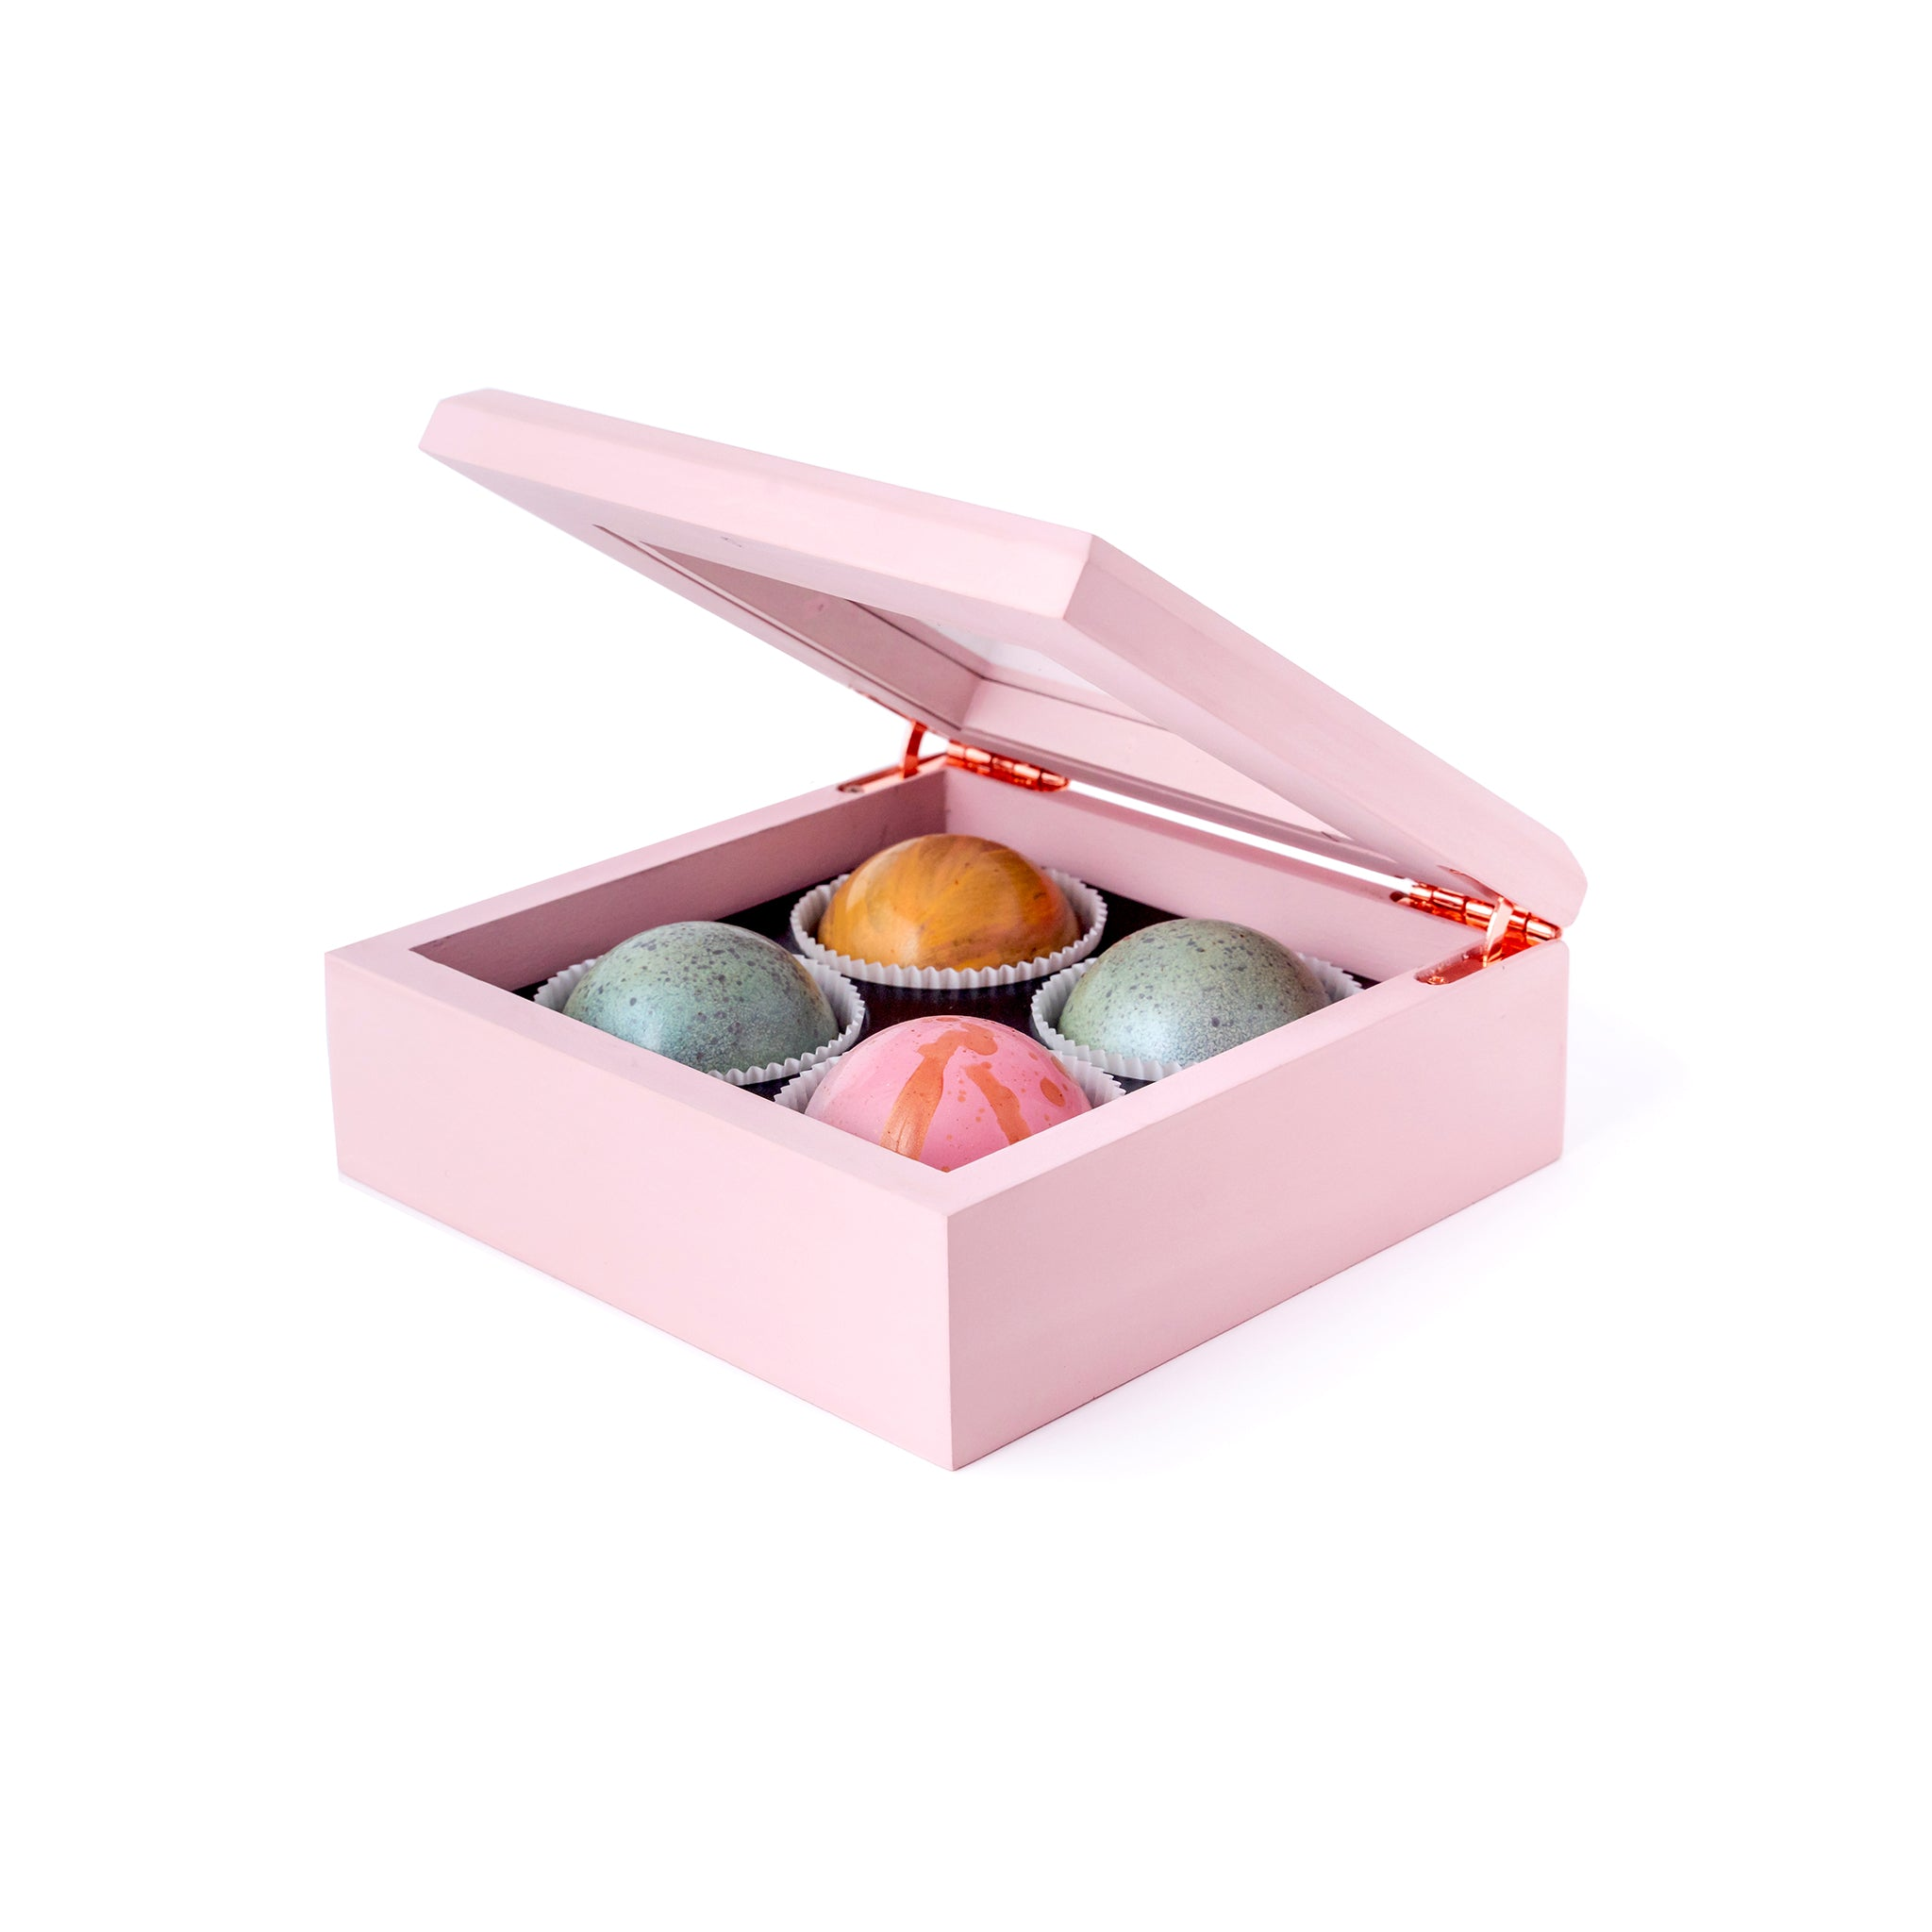 Maple Wood Chocolate Truffle Box, 4 pc. (Limited Edition)